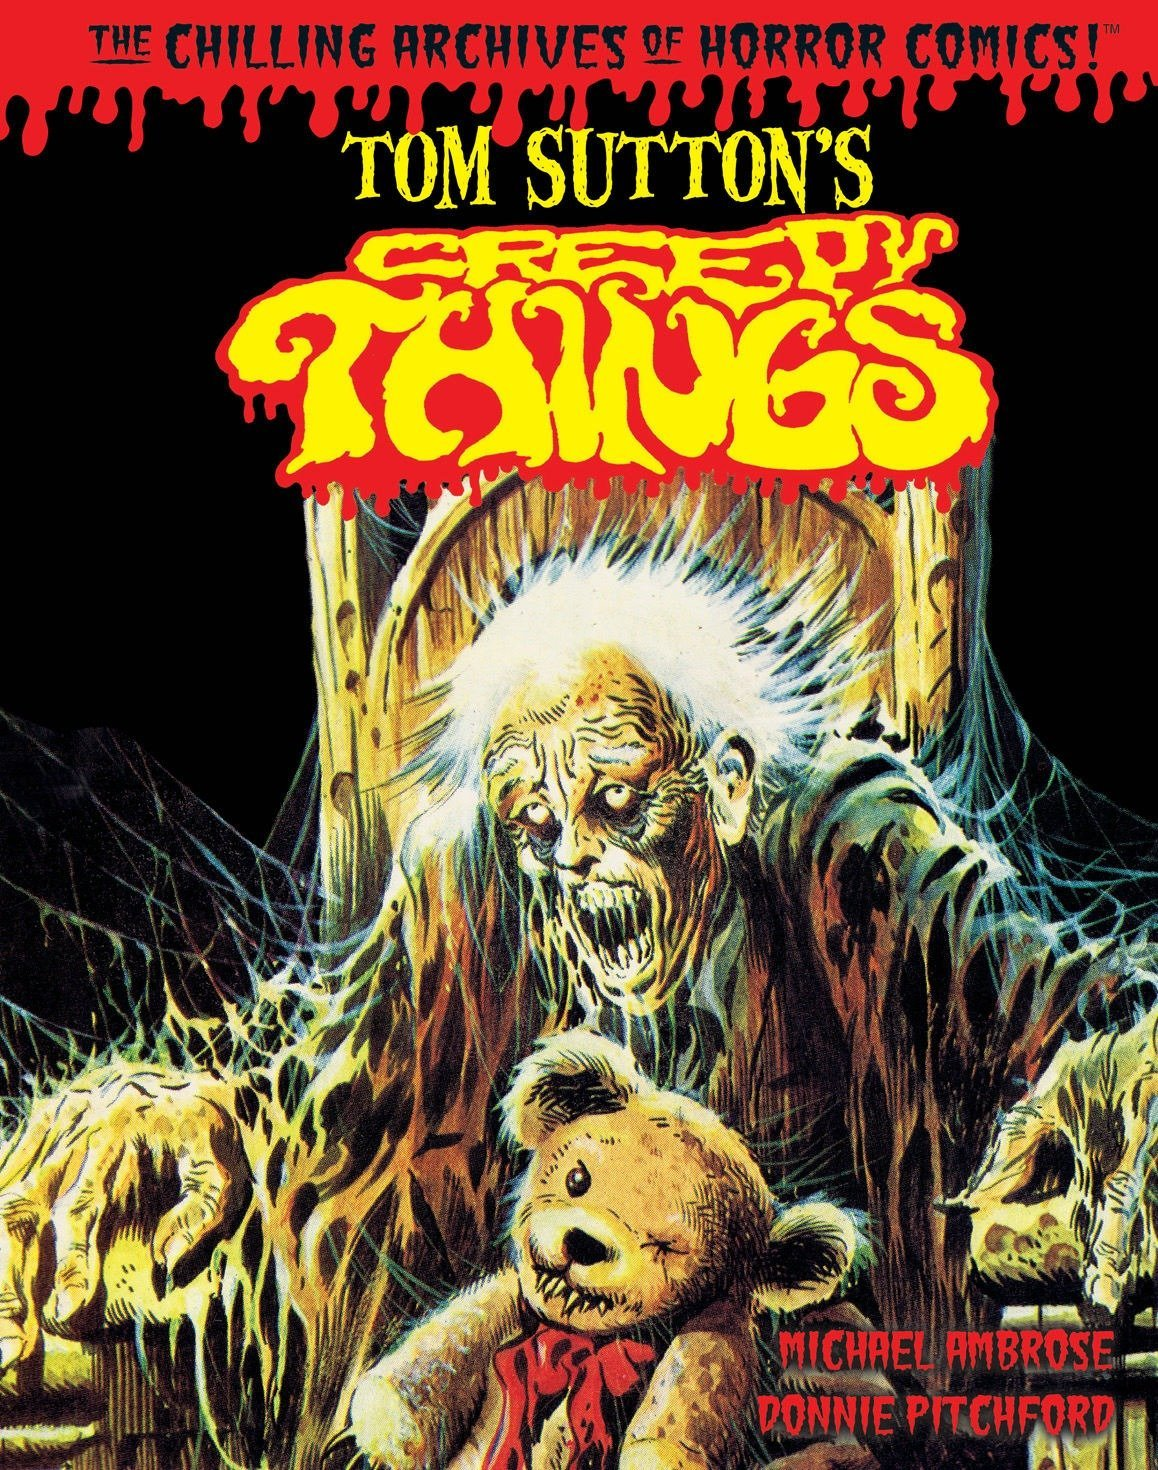 Download Tom Sutton's Creepy Things (Chilling Archives of Horror Comics!) pdf epub